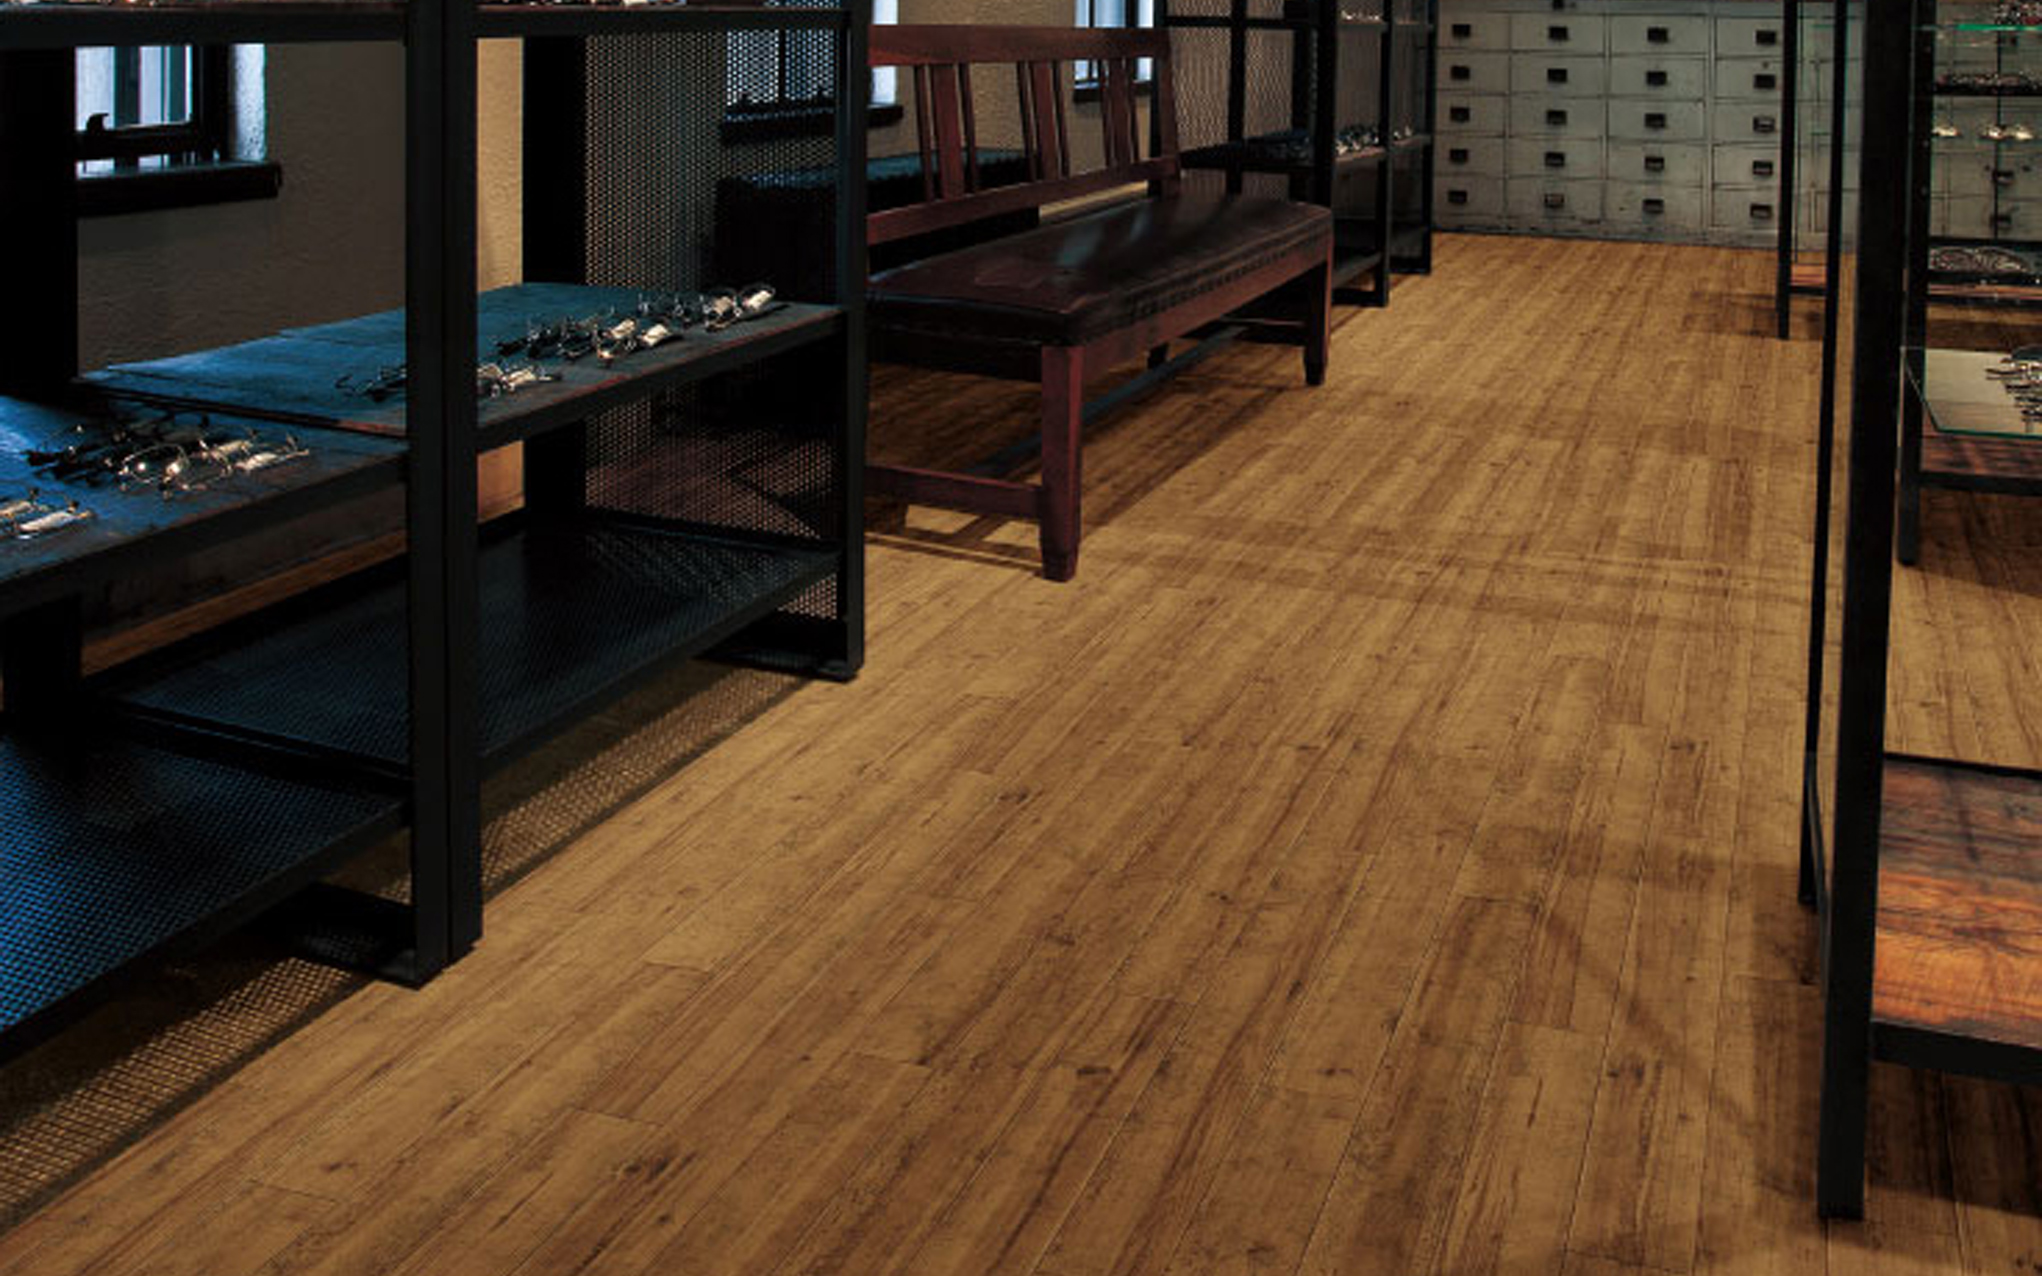 Cushion Floor. SXG Series (Retail)